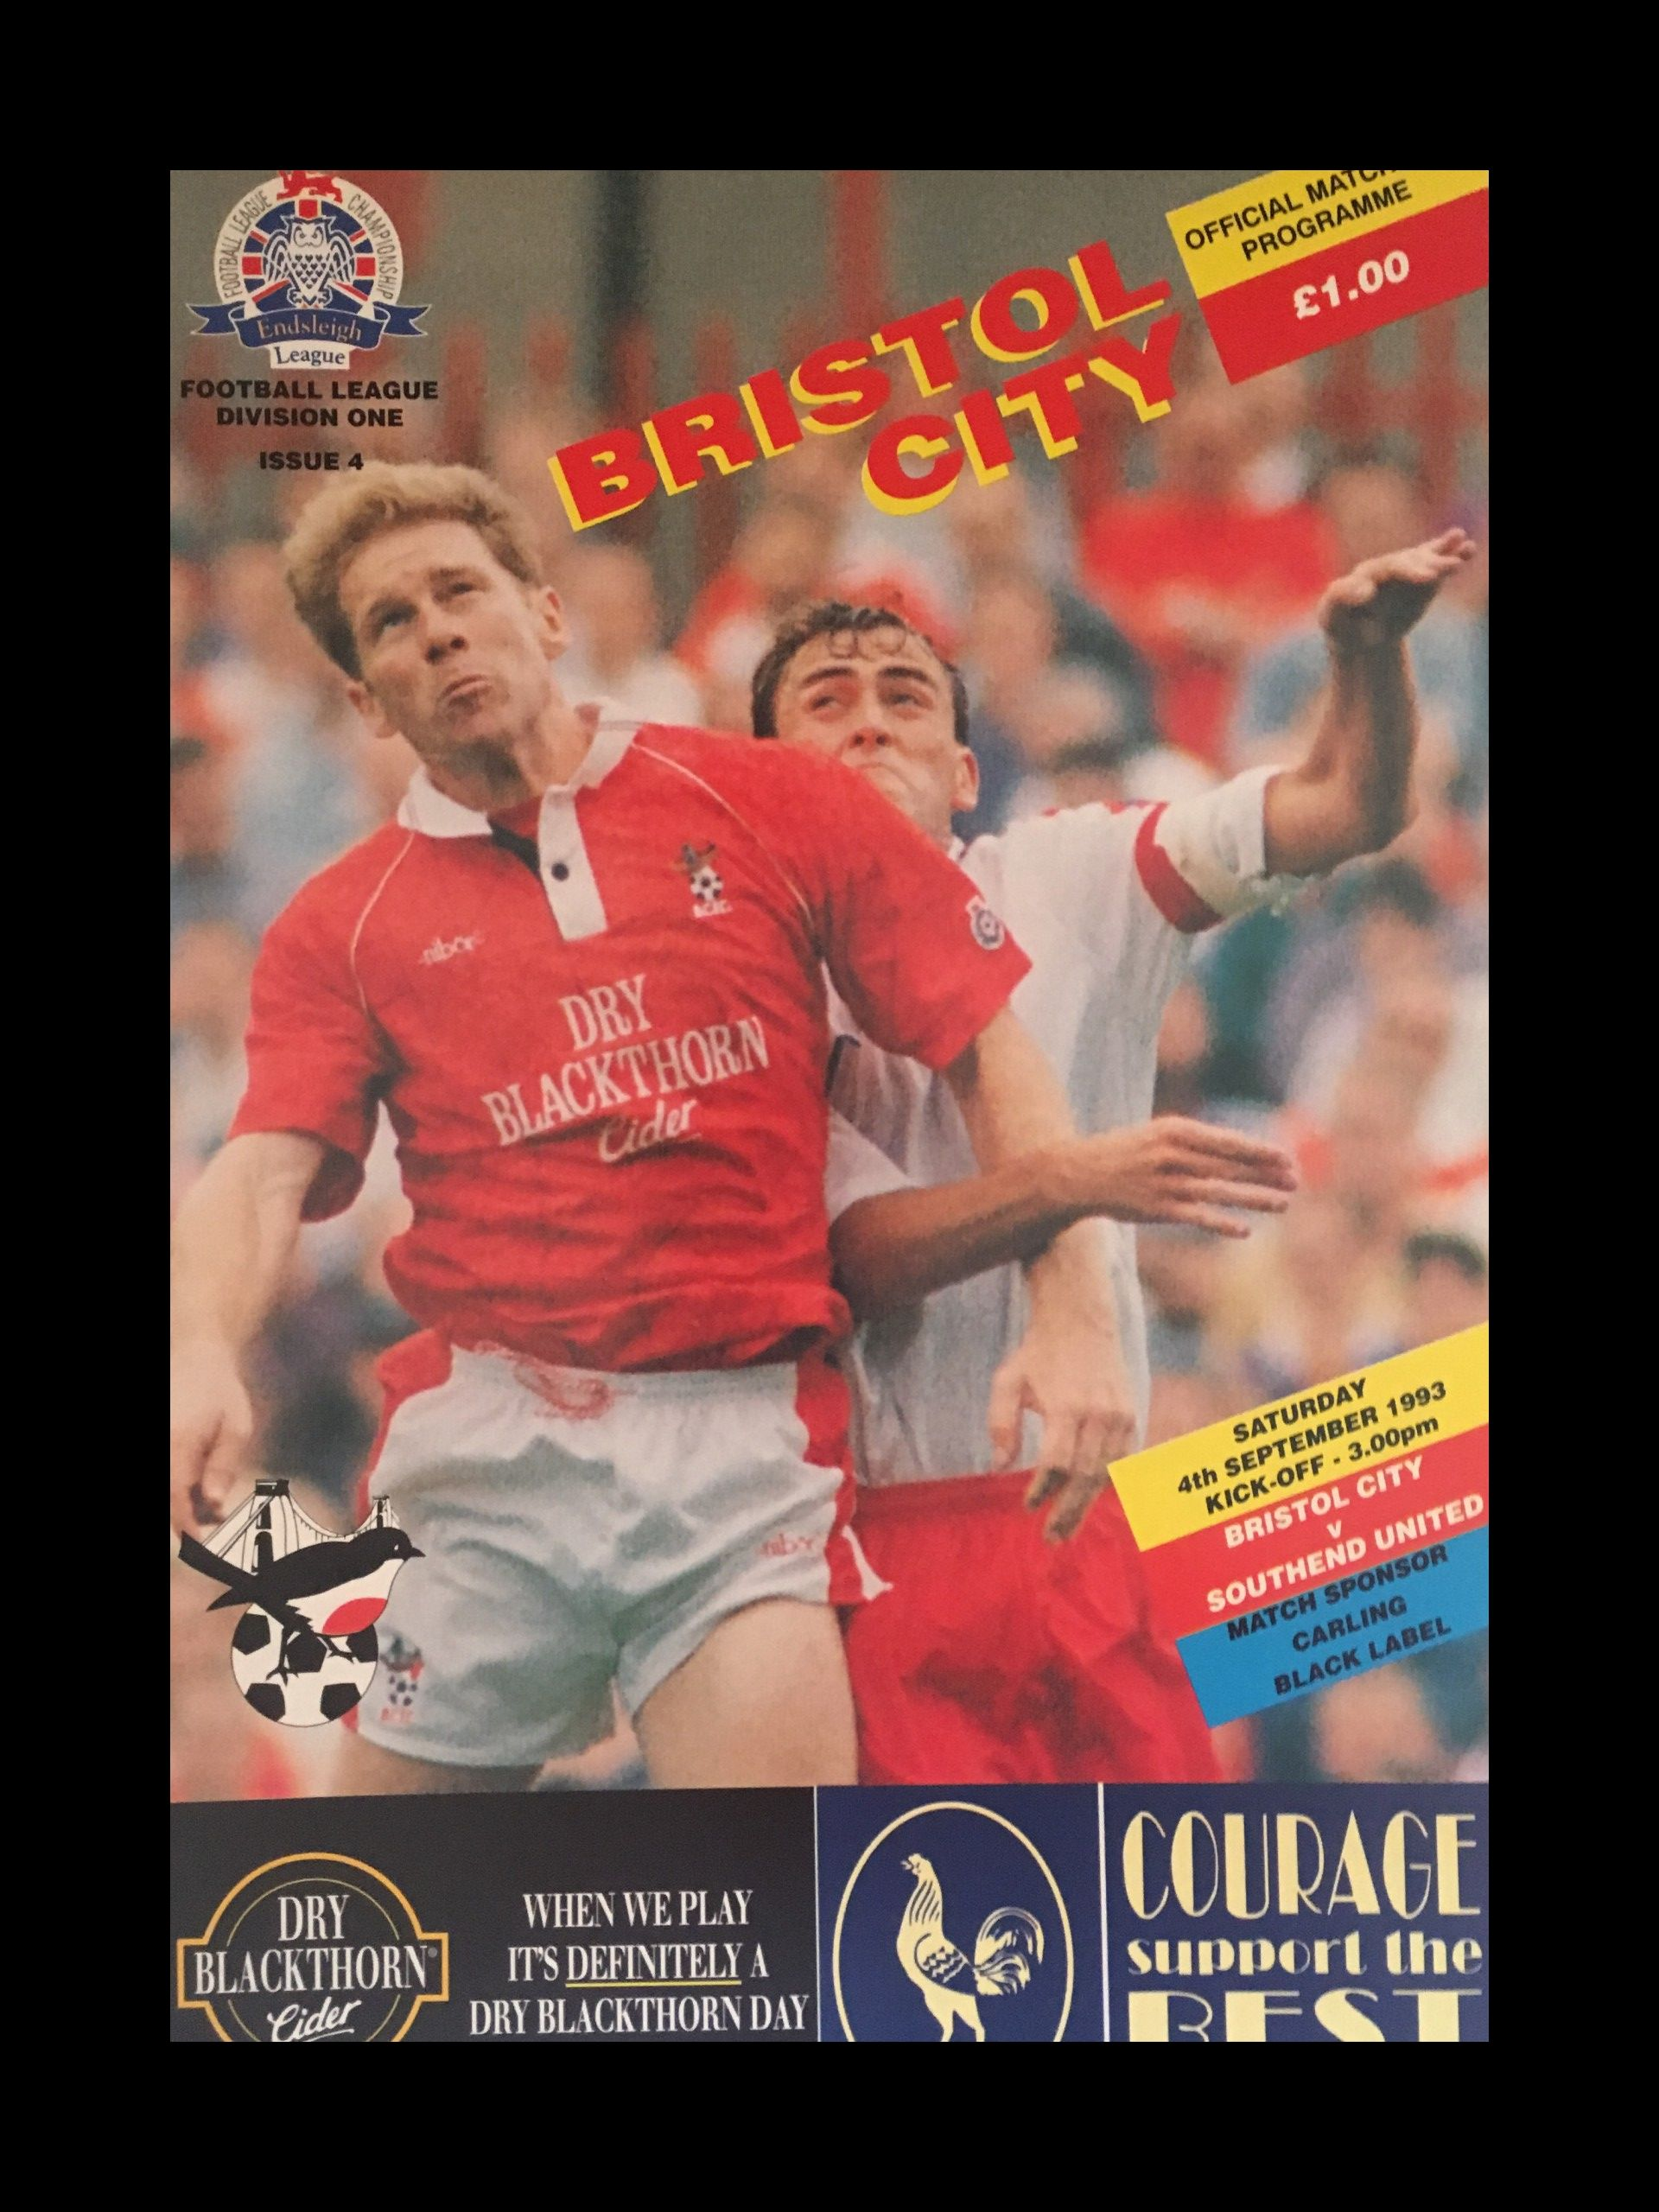 Bristol City v Southend United 04-09-1993 Programme